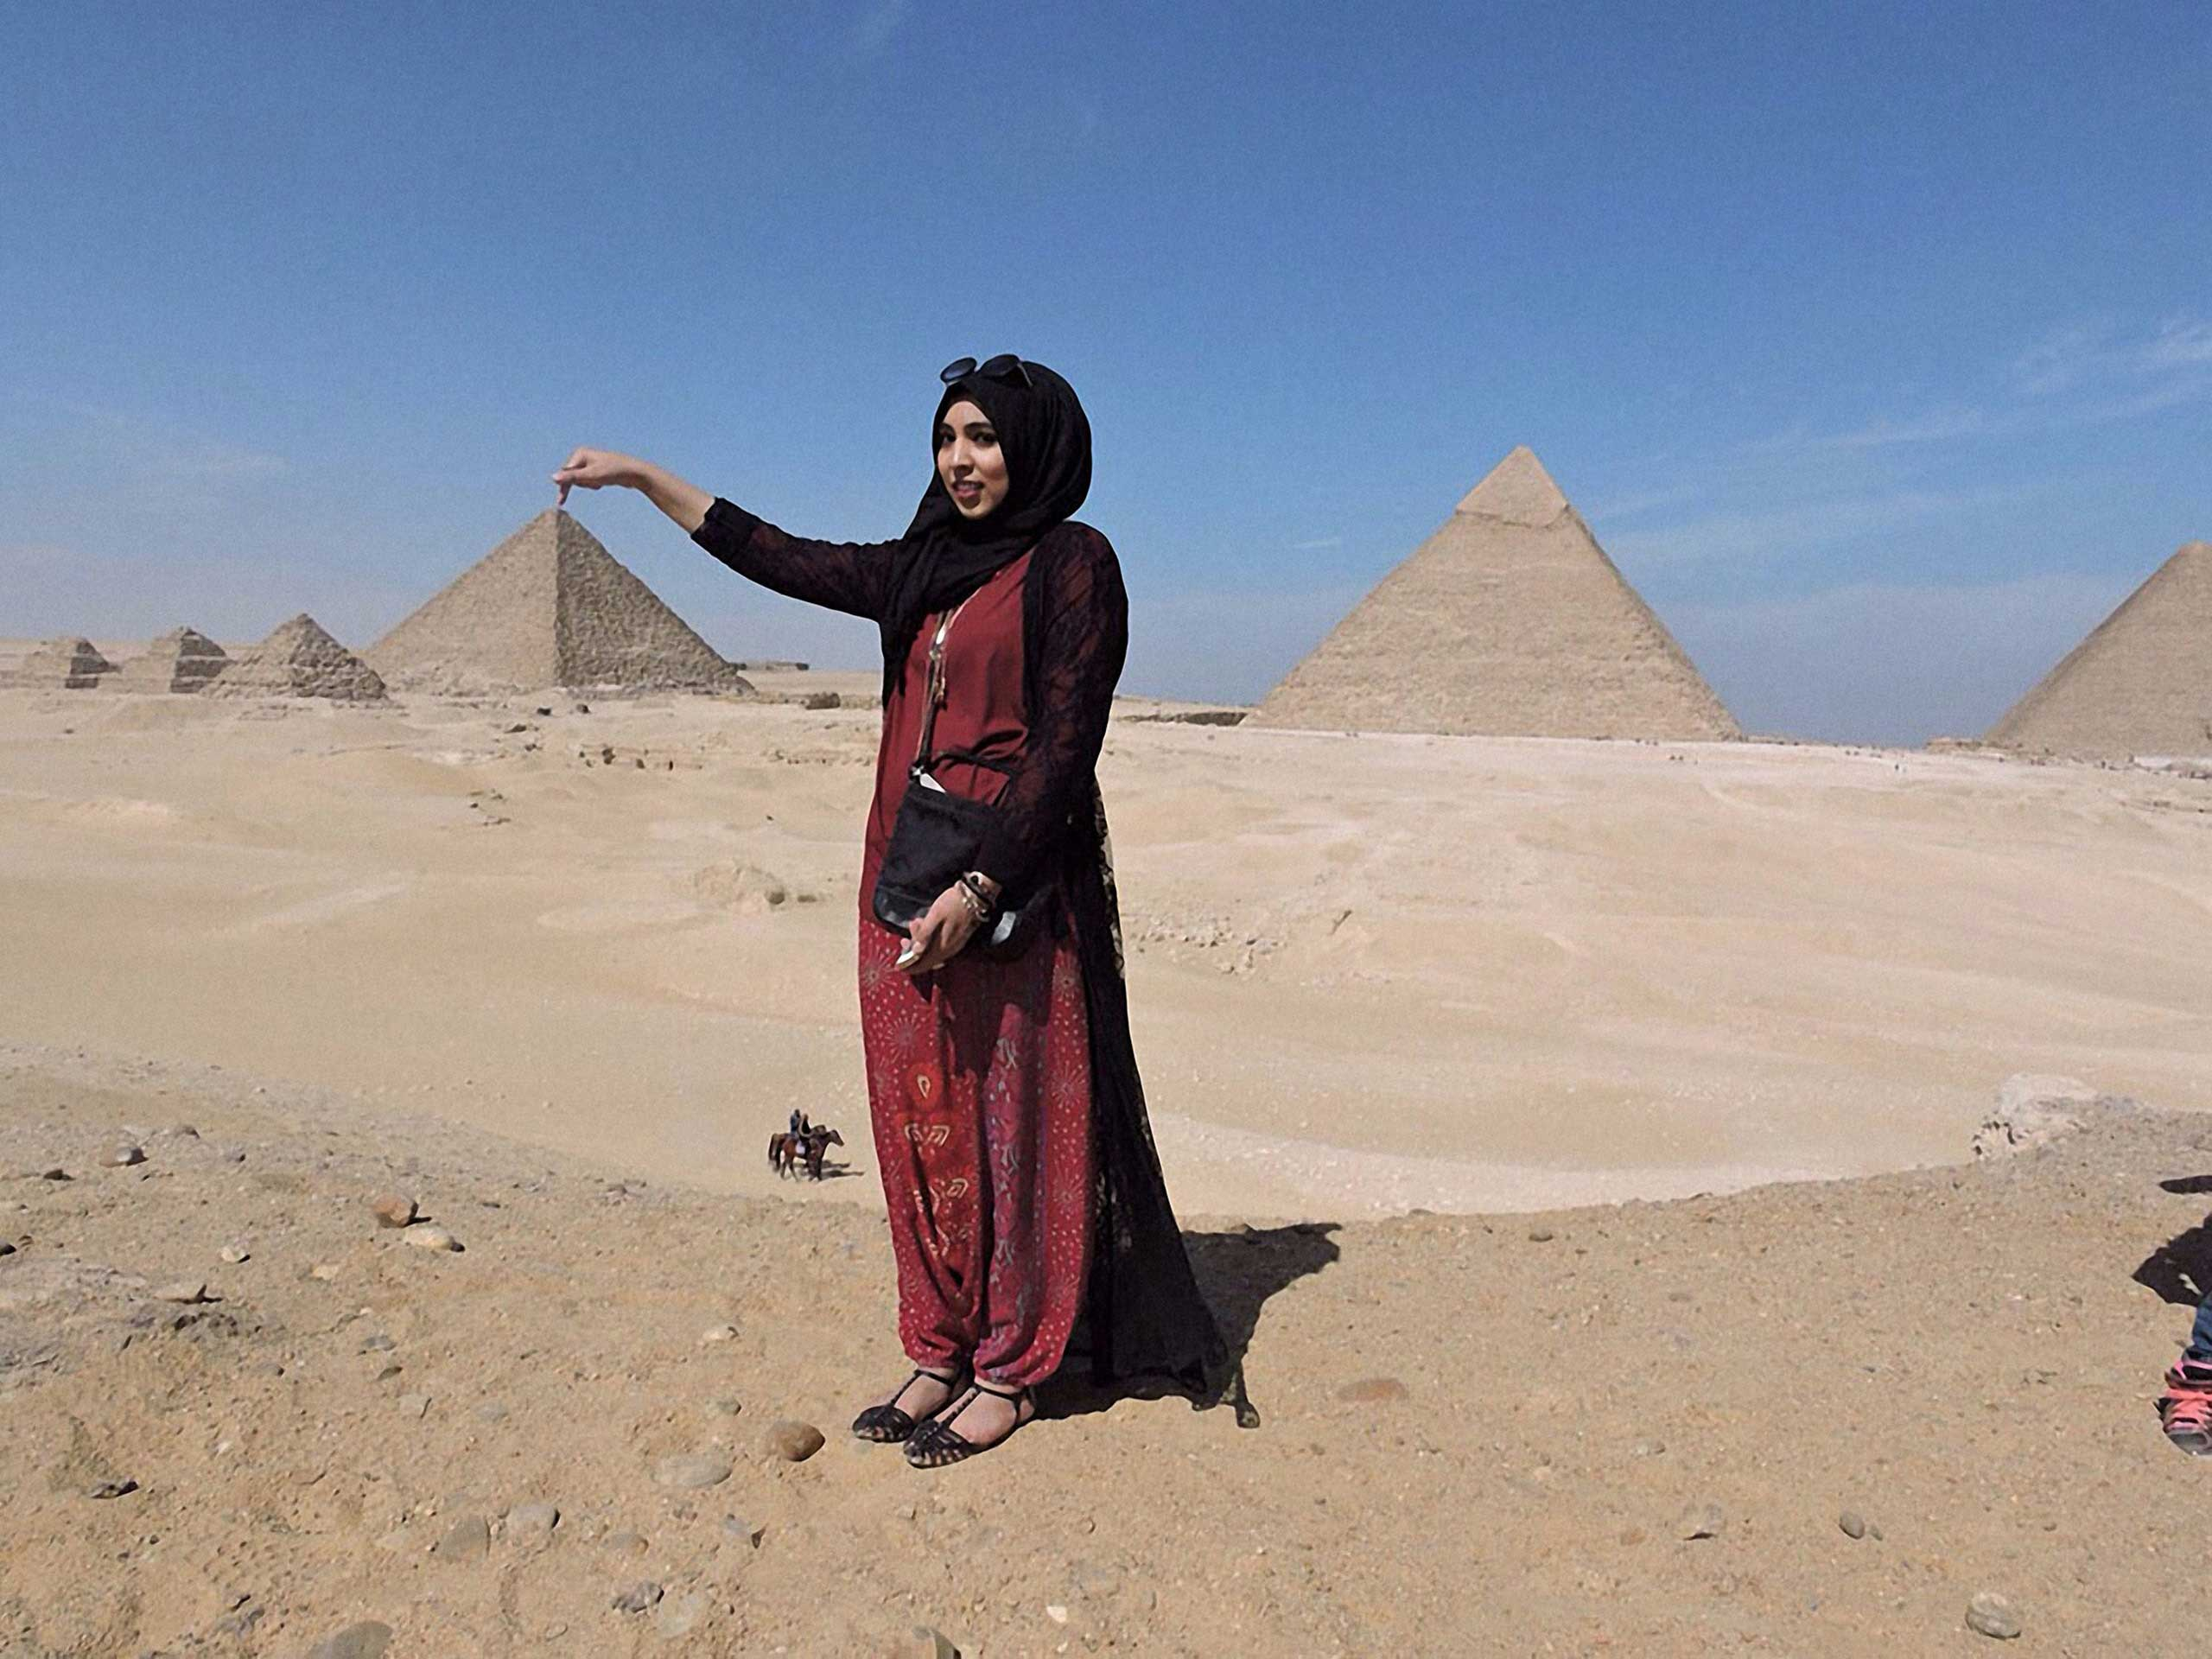 Touch the Pyramids II.  Look at me touching the top of the pyramids. I went to Egypt for this picture and I'm so glad I got it, also got one of me jumping over the pyramids but going to keep that to myself . Cairo, Egypt, 2015.